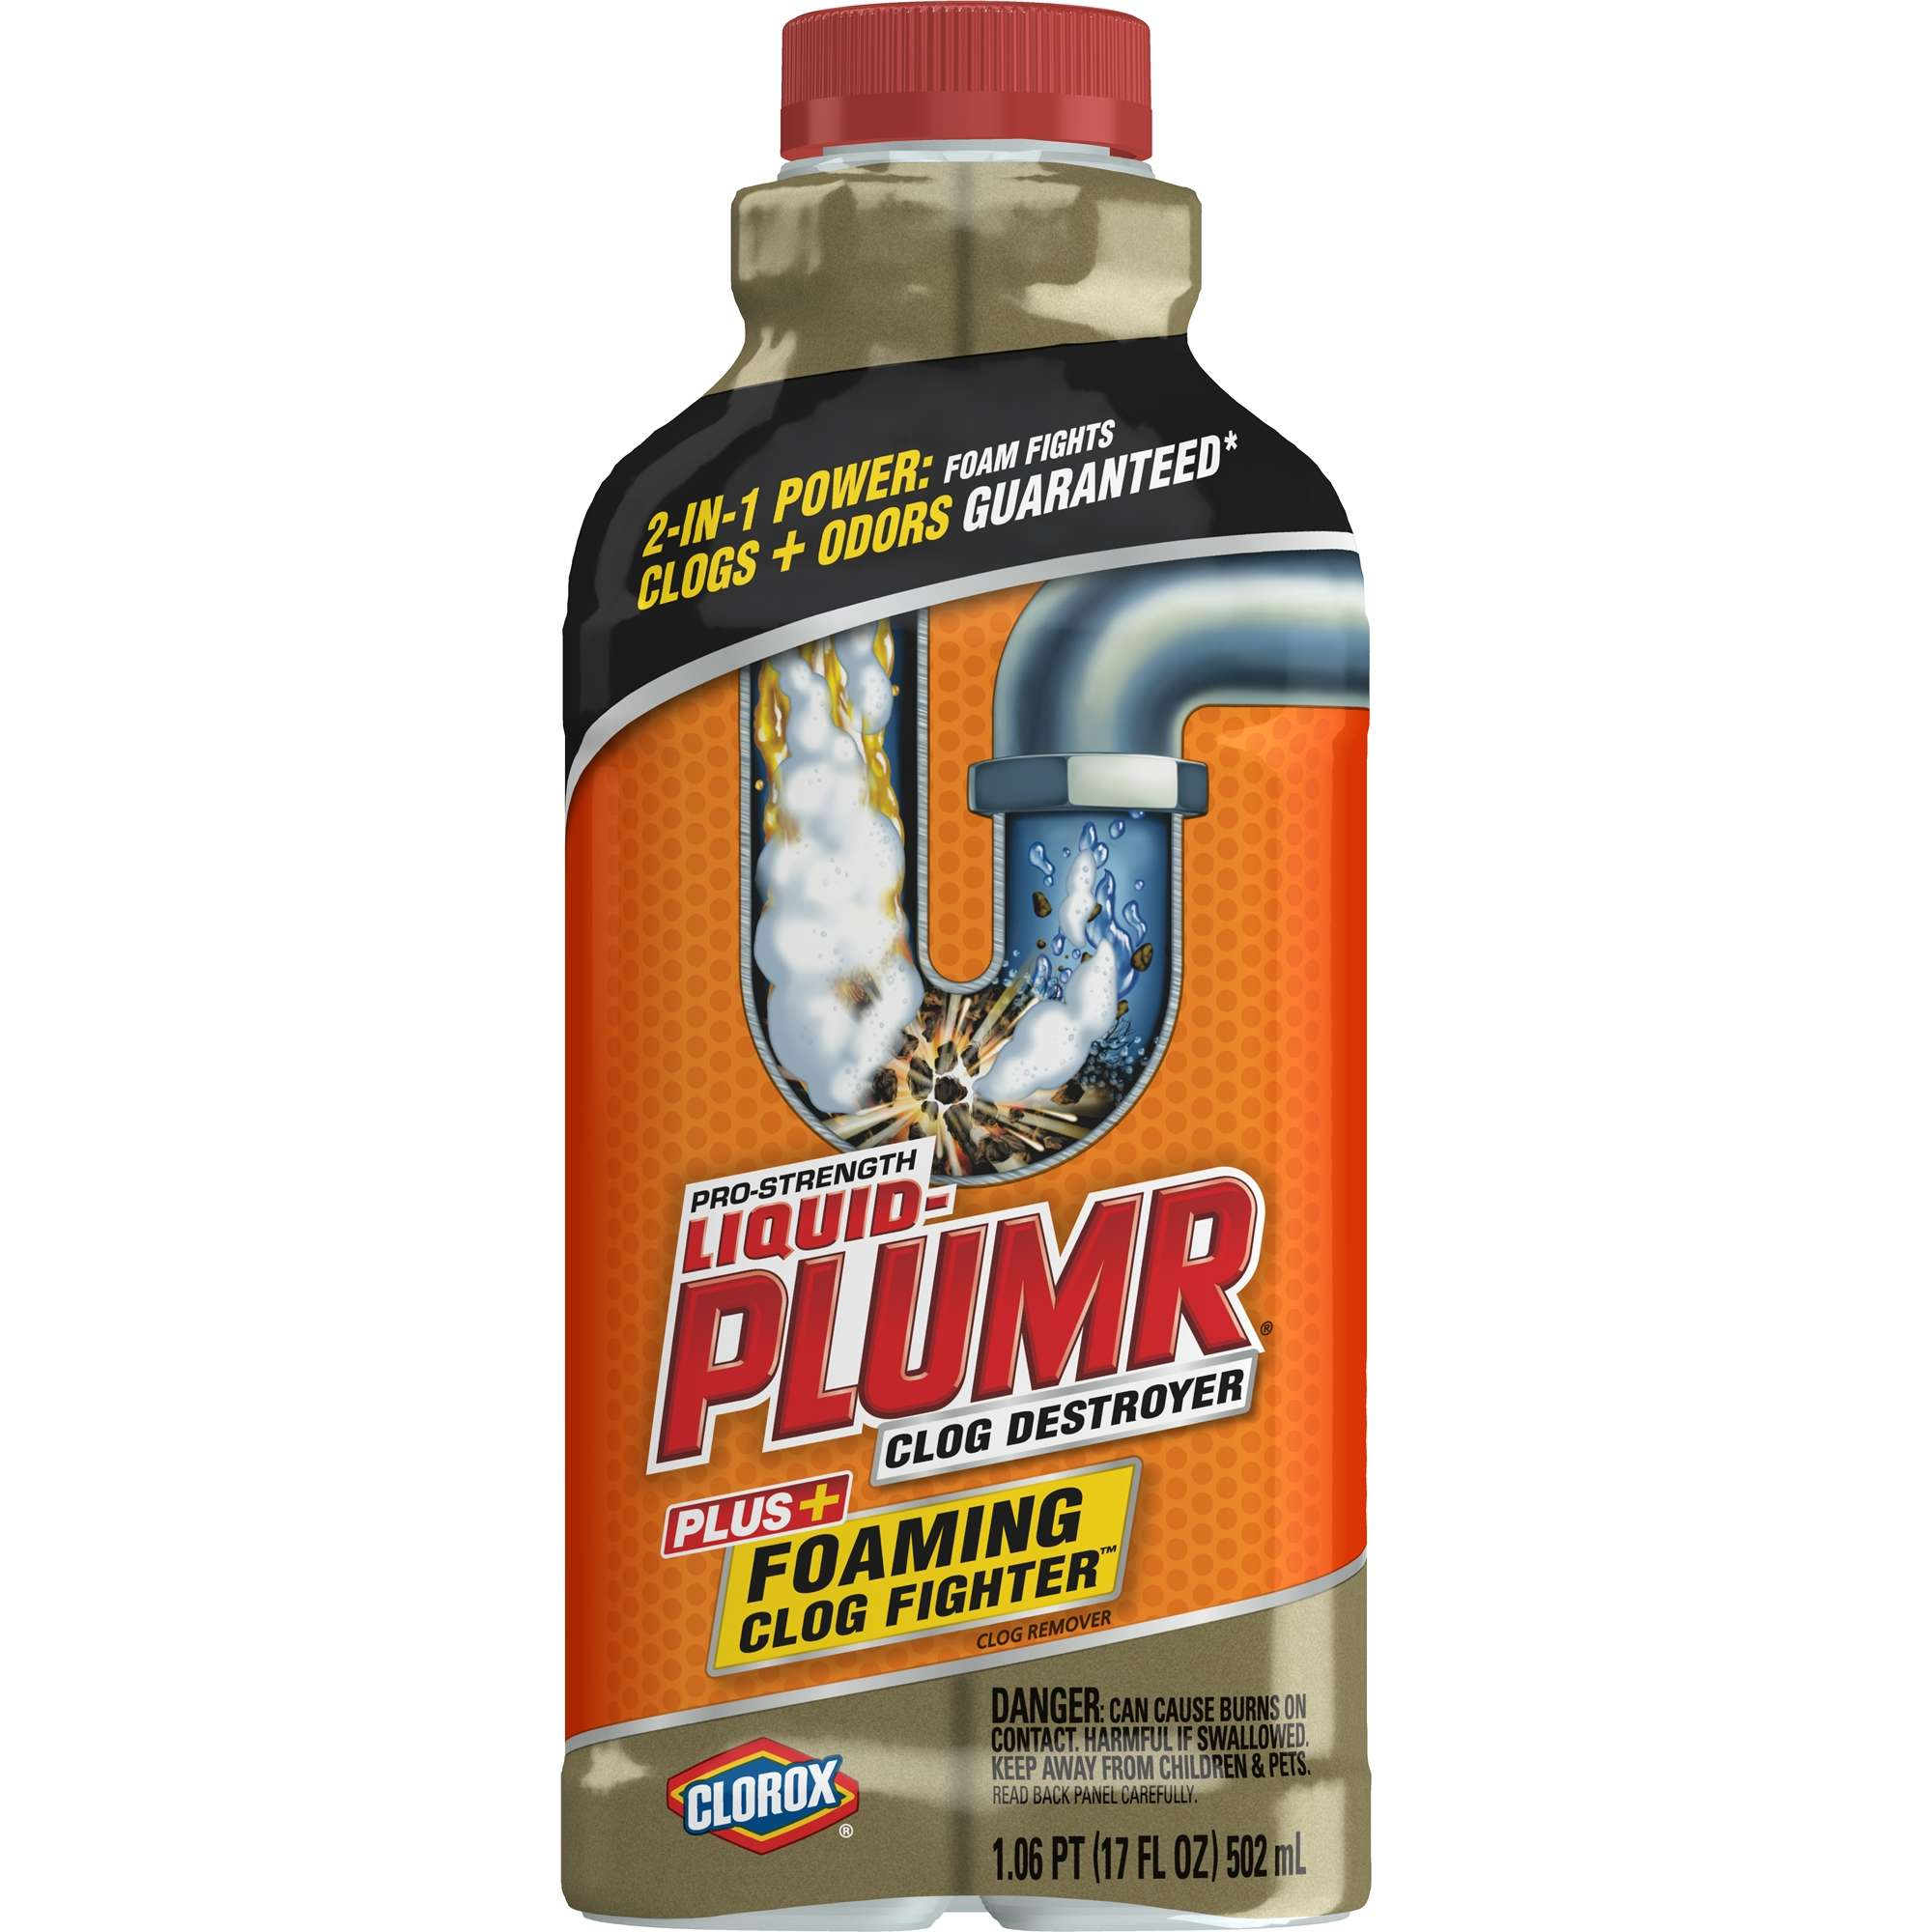 liquidplumr prostrength drain cleaning clog remover slow flow fighter 17